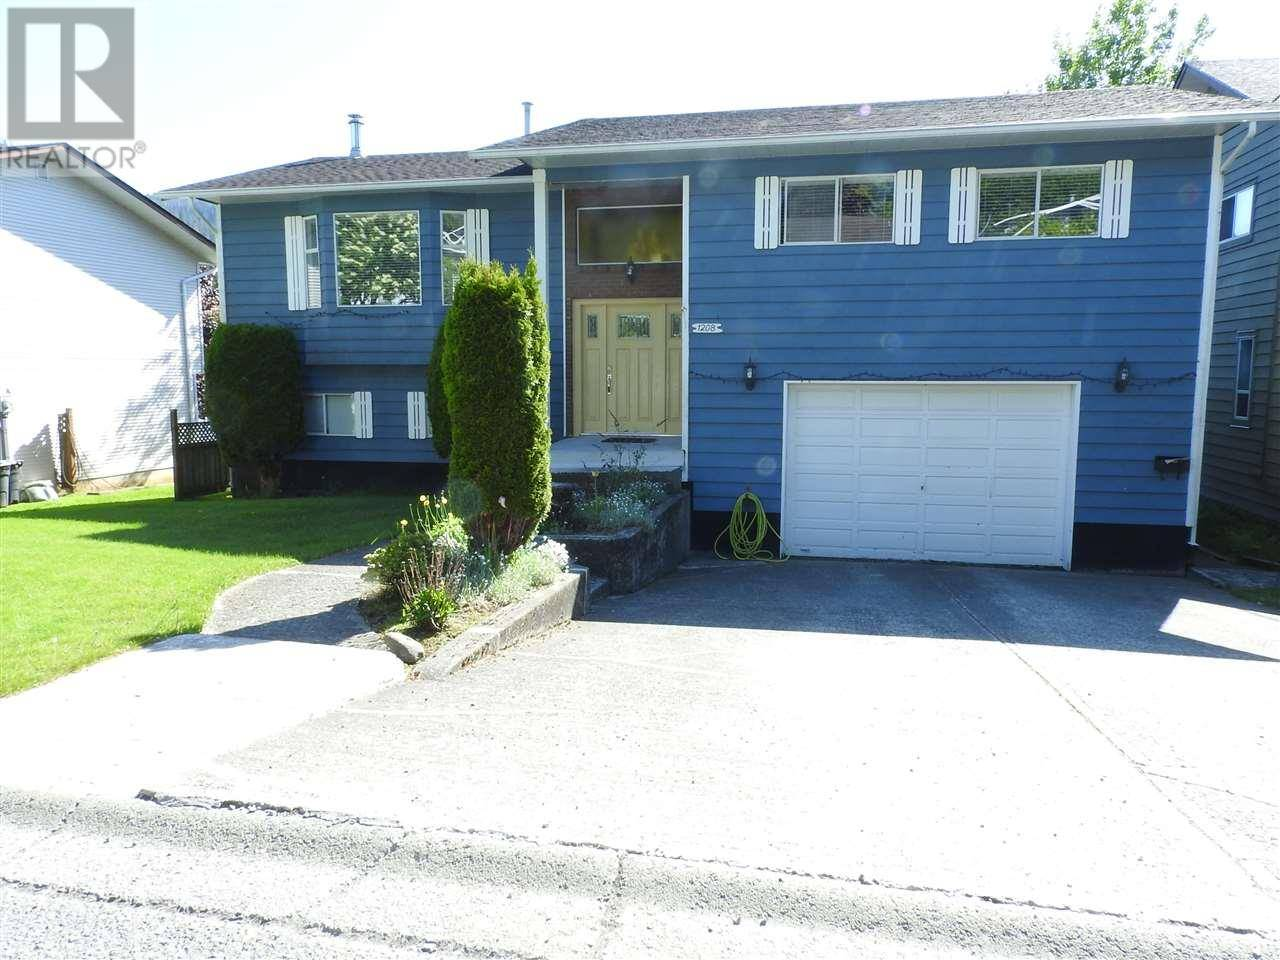 House for sale at 1208 Conrad St Prince Rupert British Columbia - MLS: R2375833